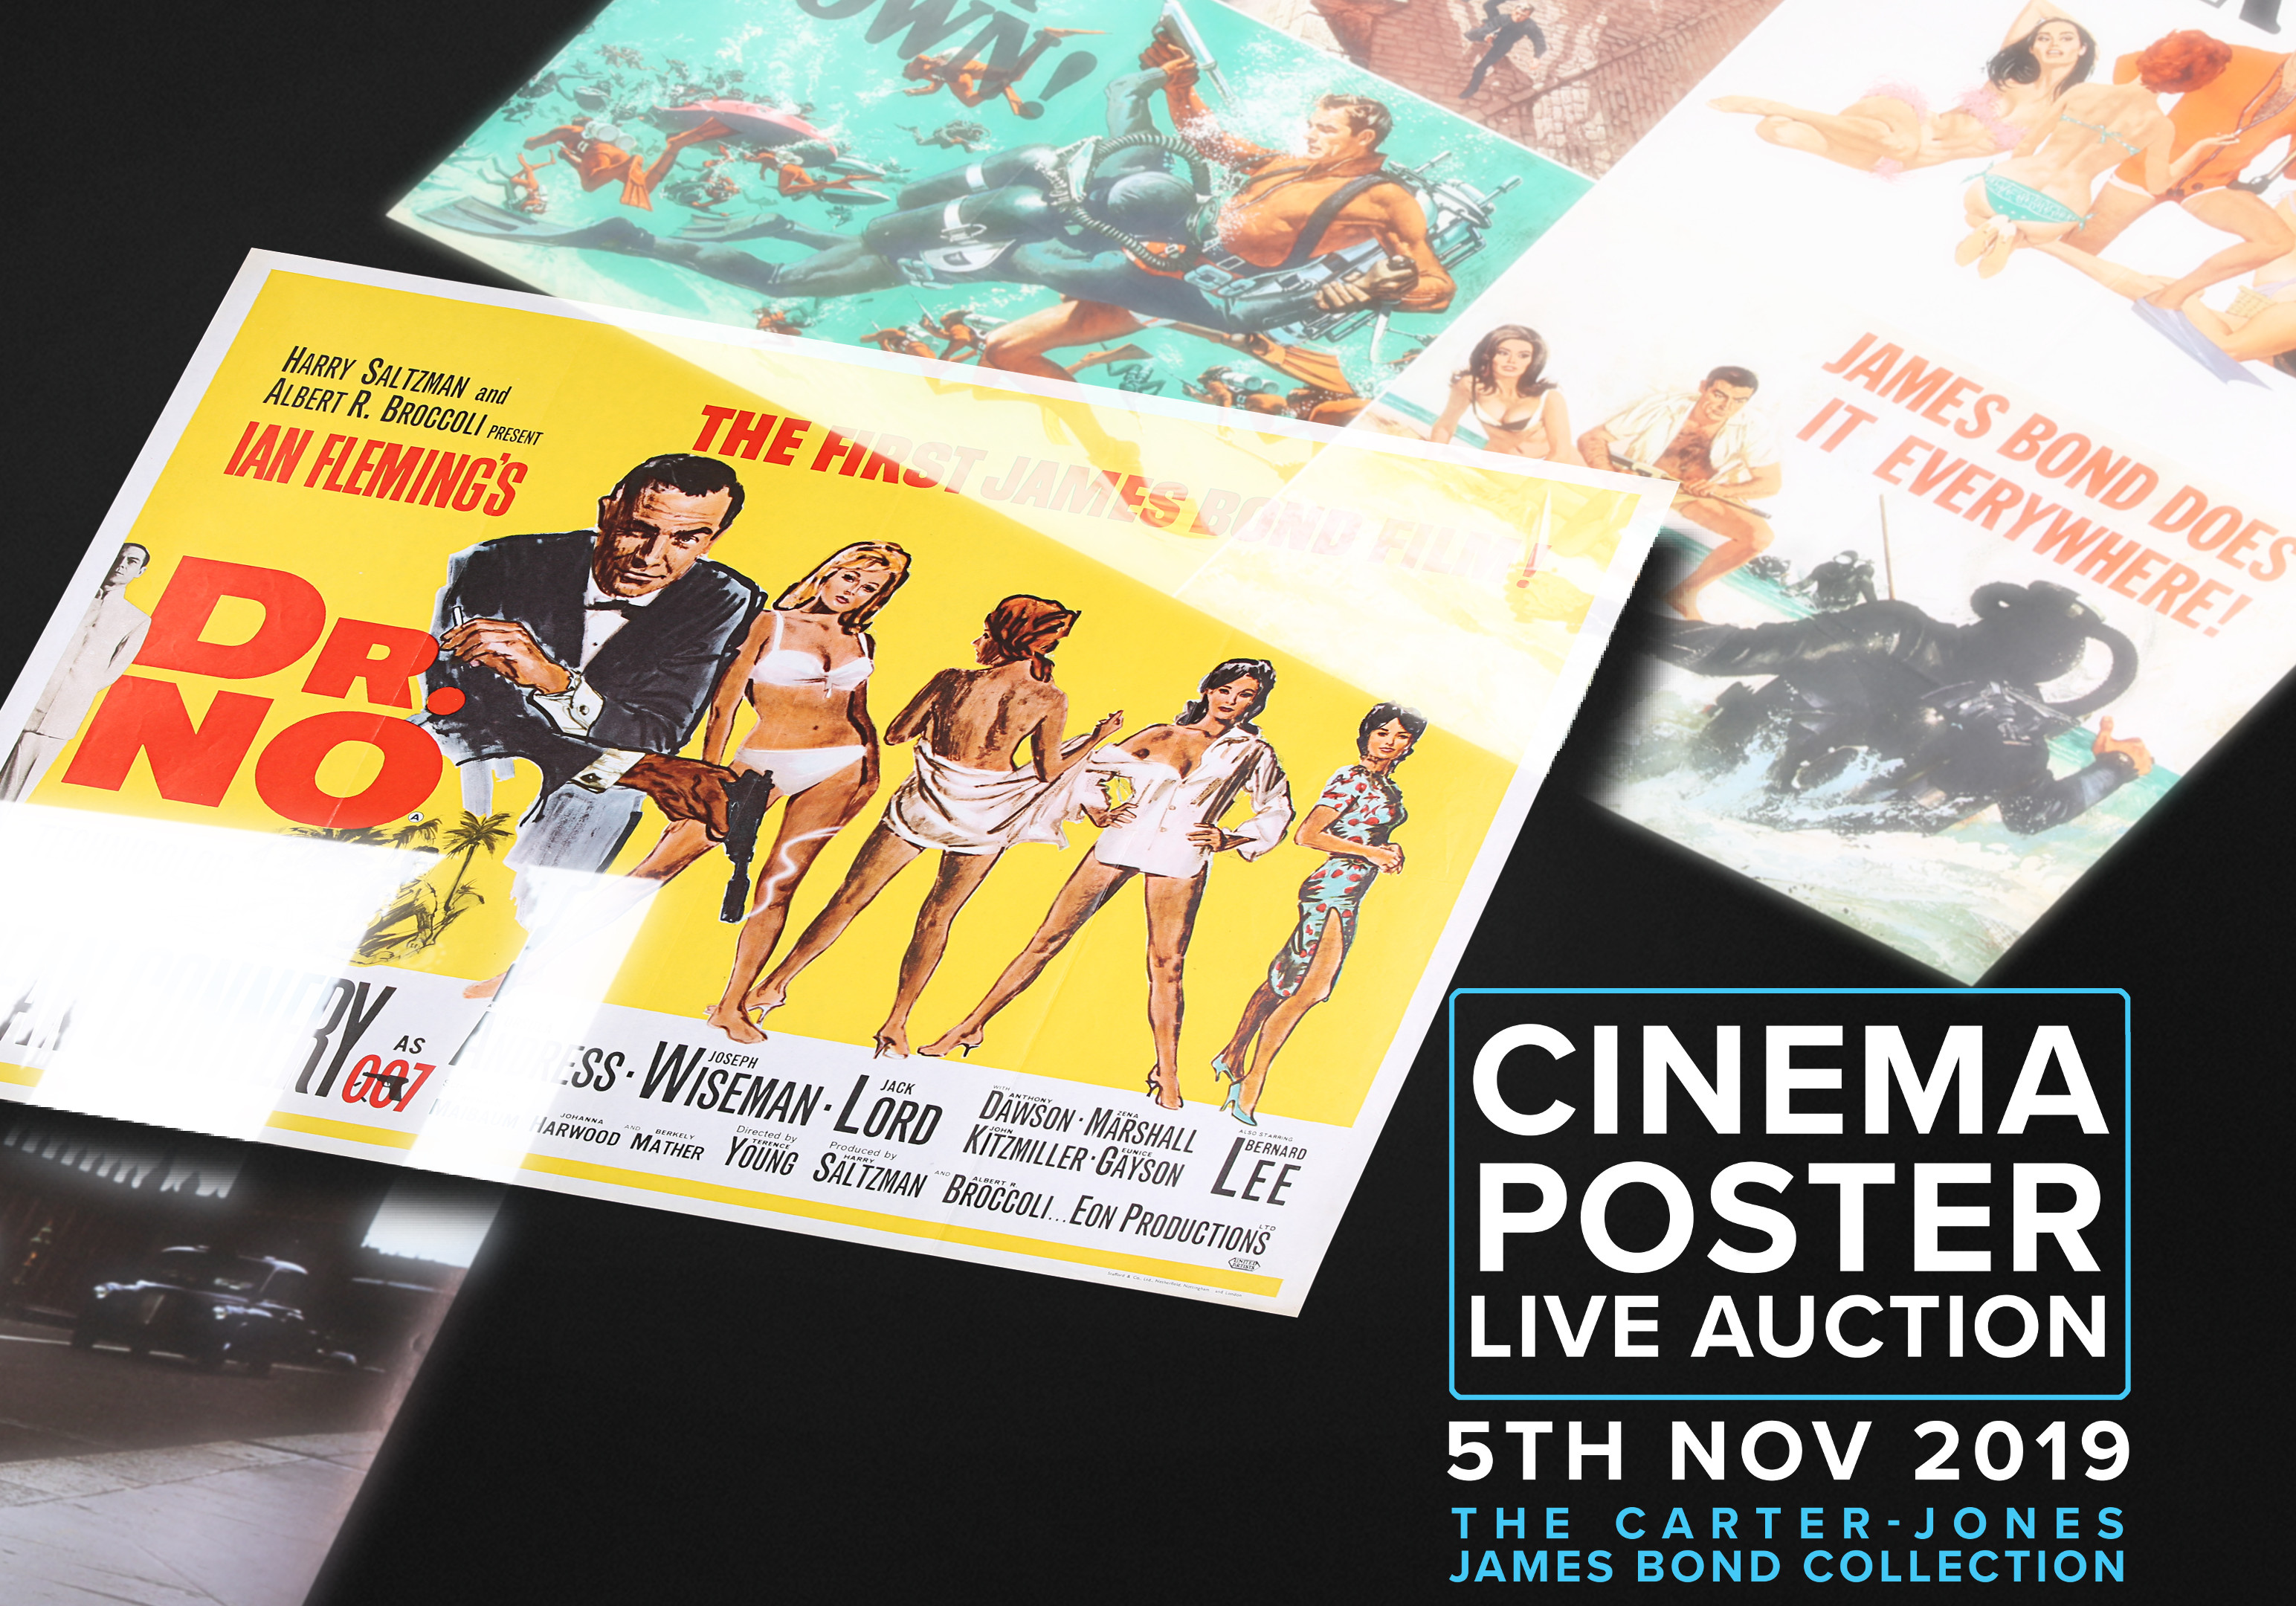 Propstore James Bond cinema poster auction